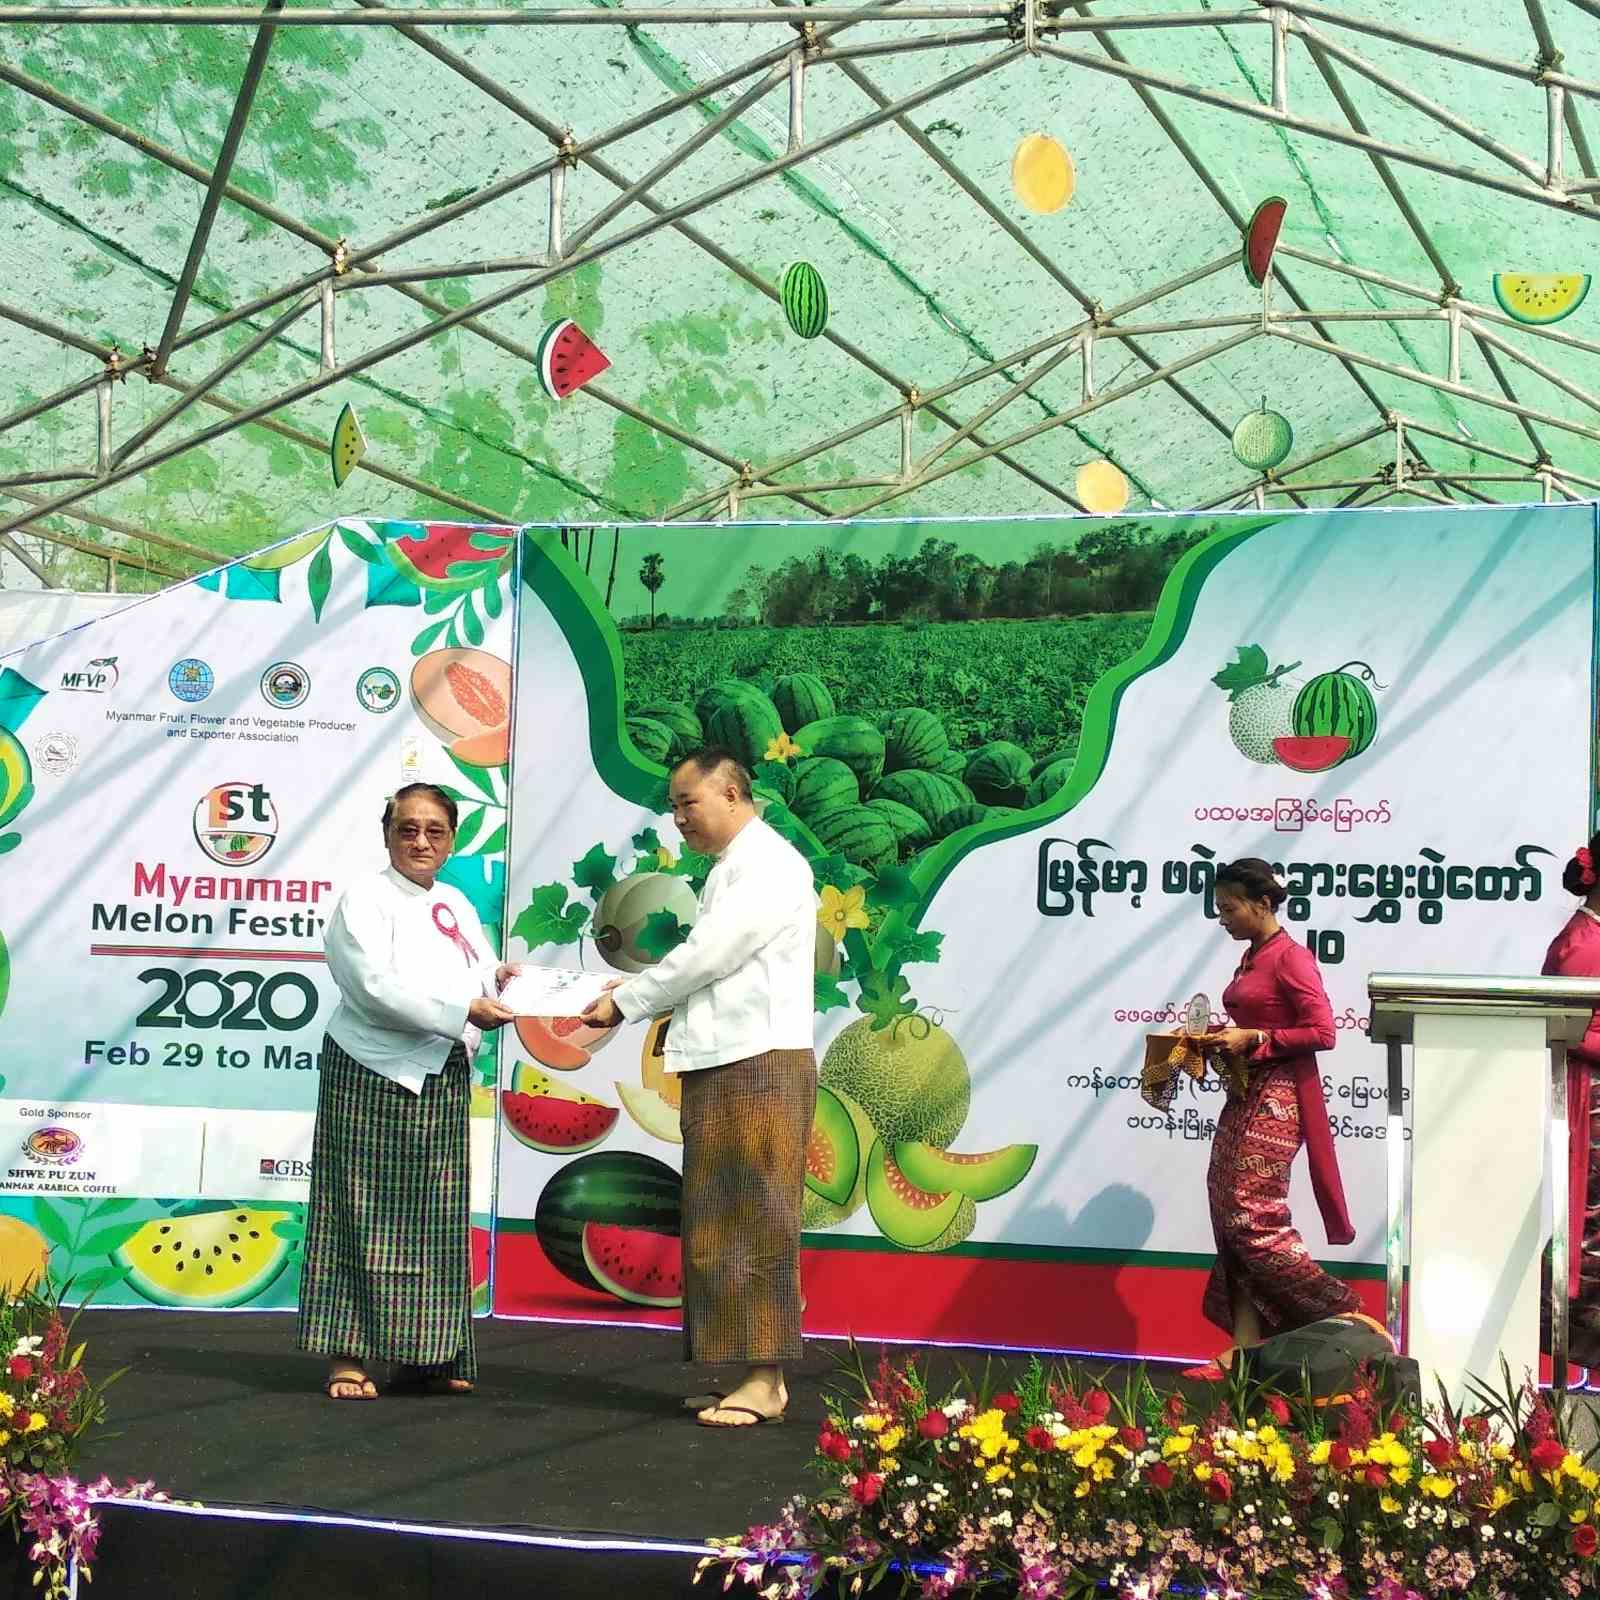 1st Myanmar Melon Festival 2020 (Photo 1)